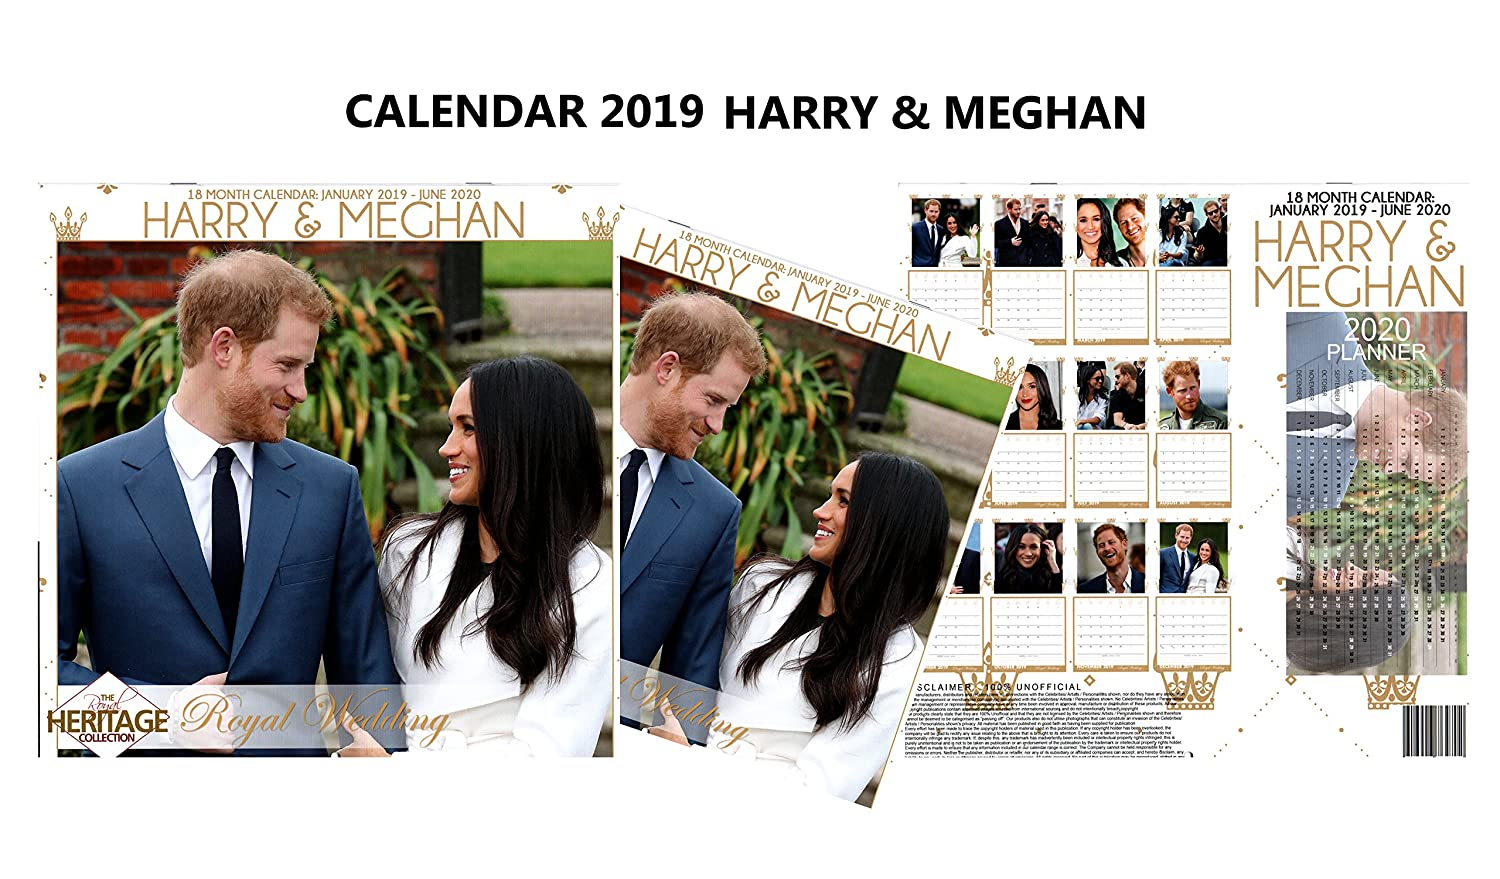 The Royals Harry And Meghan December 2019 Calendar Amazon.: Harry & Meghan The Royal Wedding 18 Month Calendar